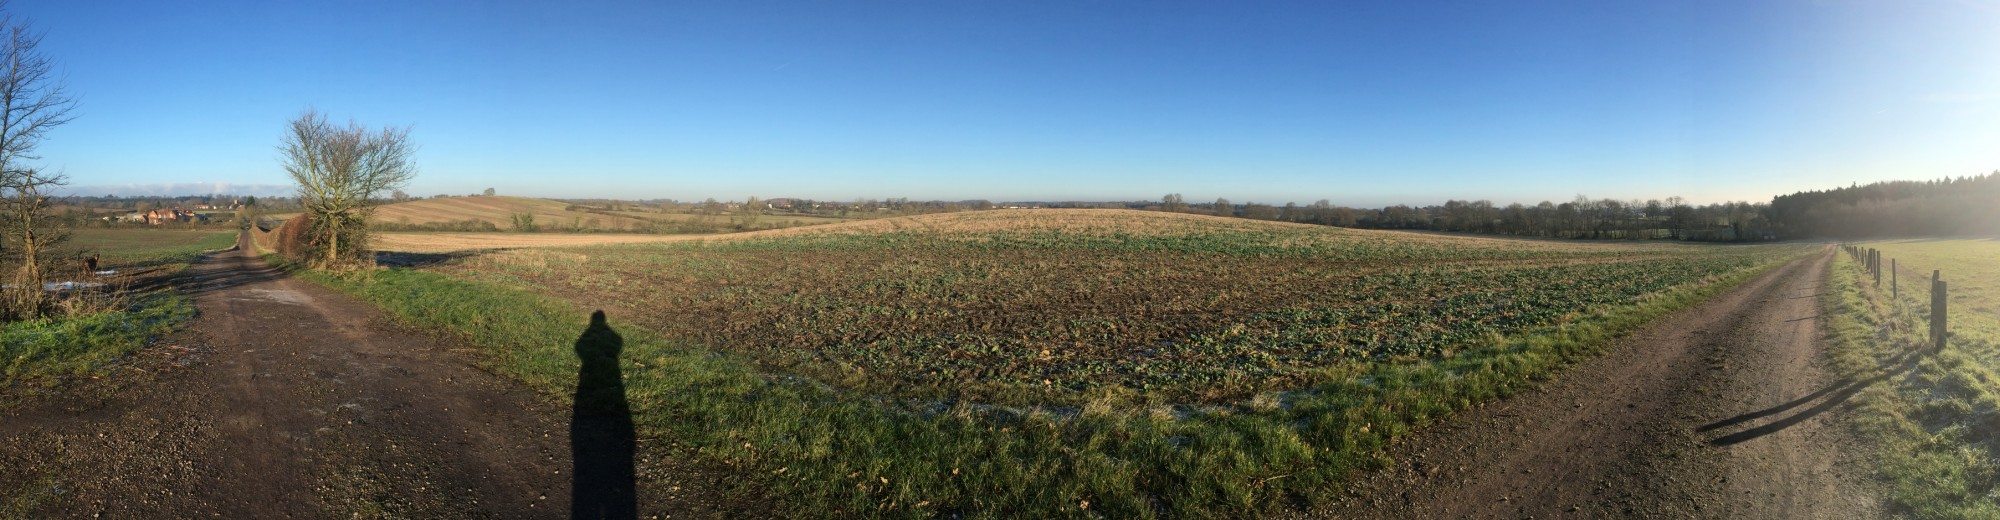 Eversholt - A view over the fields